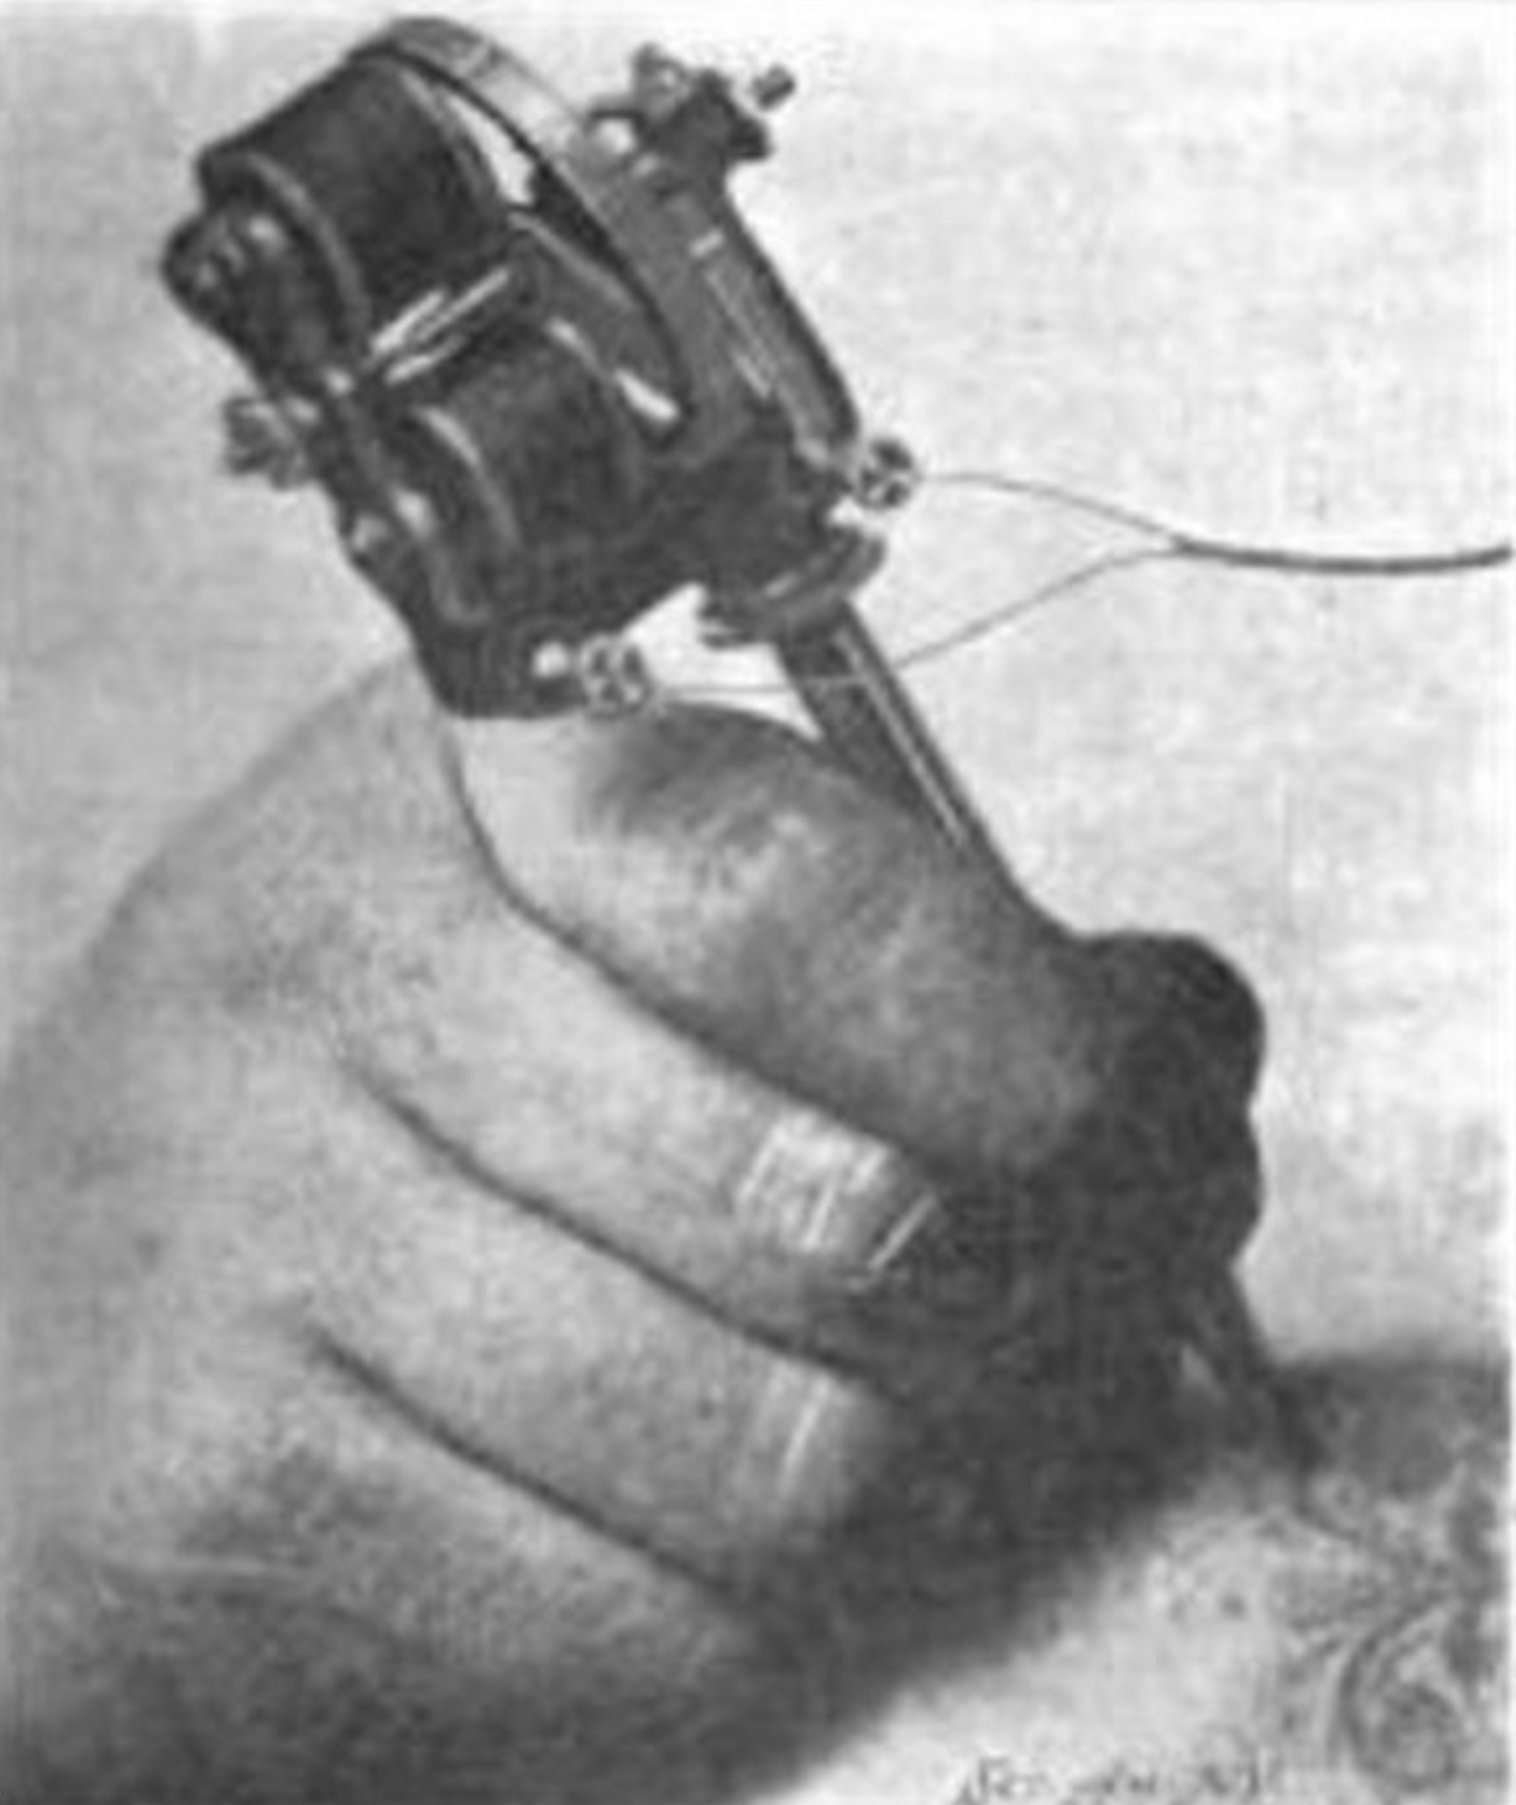 Circuit Diagram Tattoo Electric Machine History The Tattooing Needle Scientific American Sept 12 1903 Pg 189